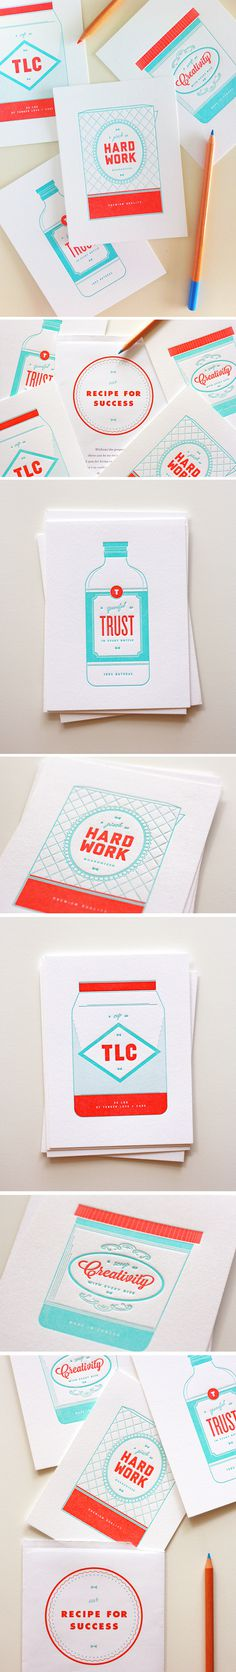 Recipe for Success Series - One Plus One Design #Stationery #Design #Illustration